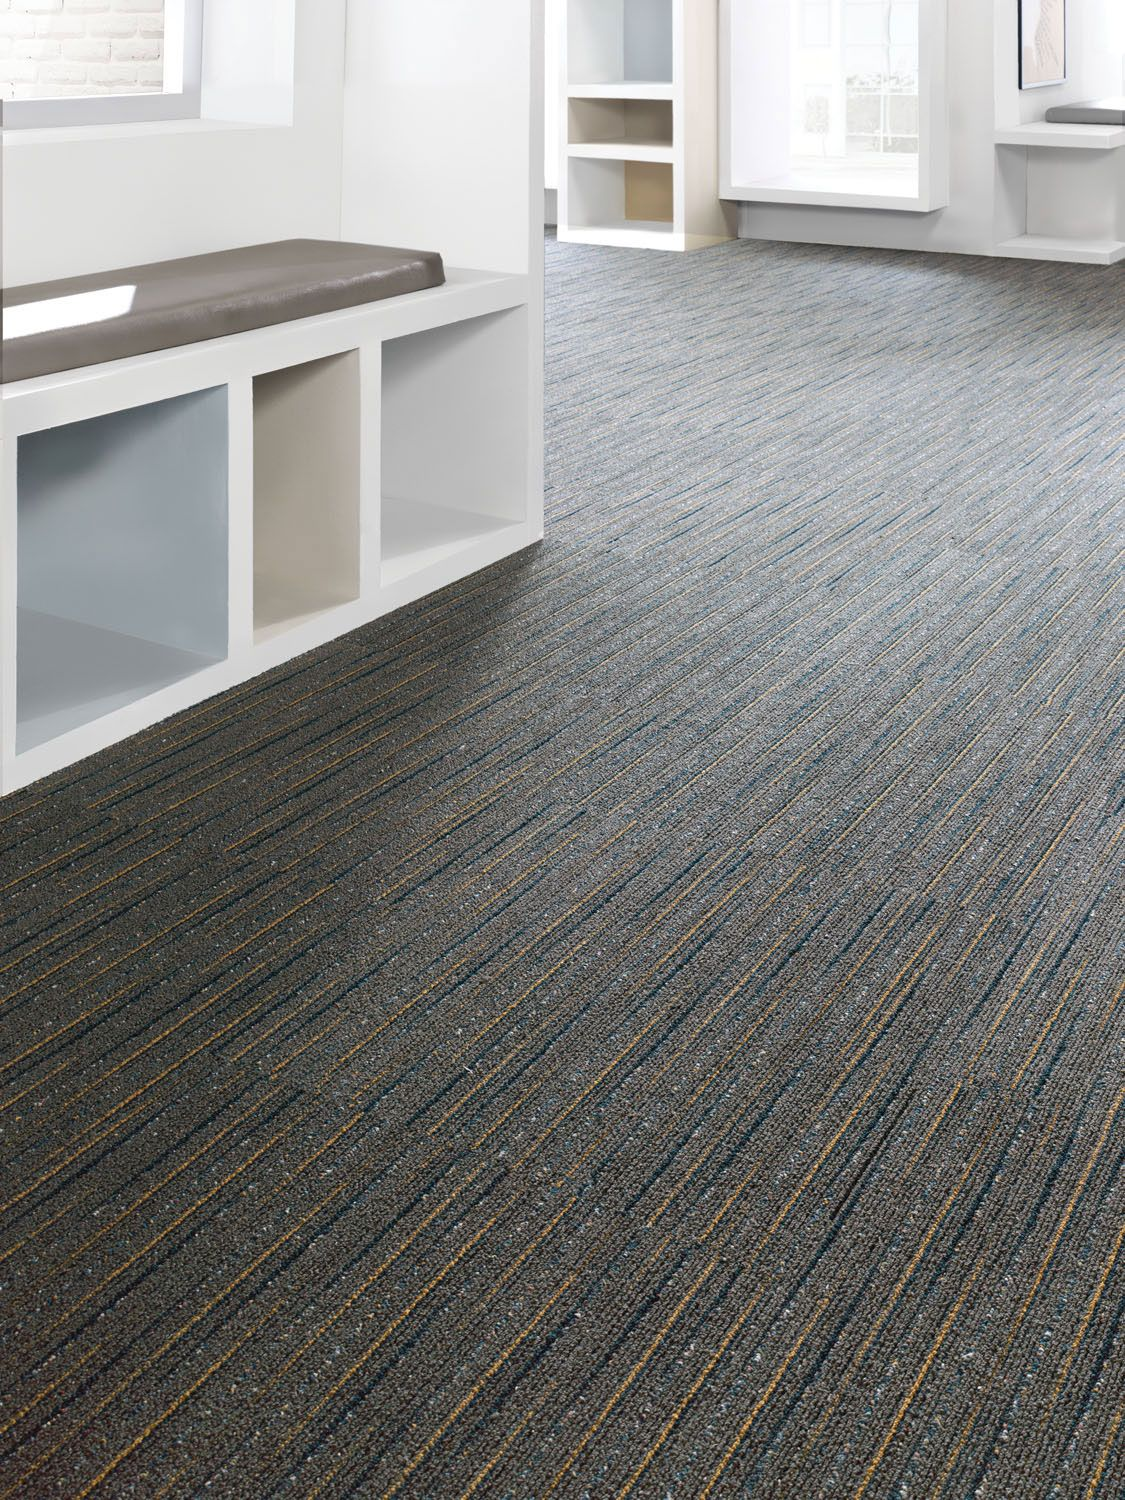 mohawk group - commercial flooring - woven, broadloom and modular carpet HGSYRUK